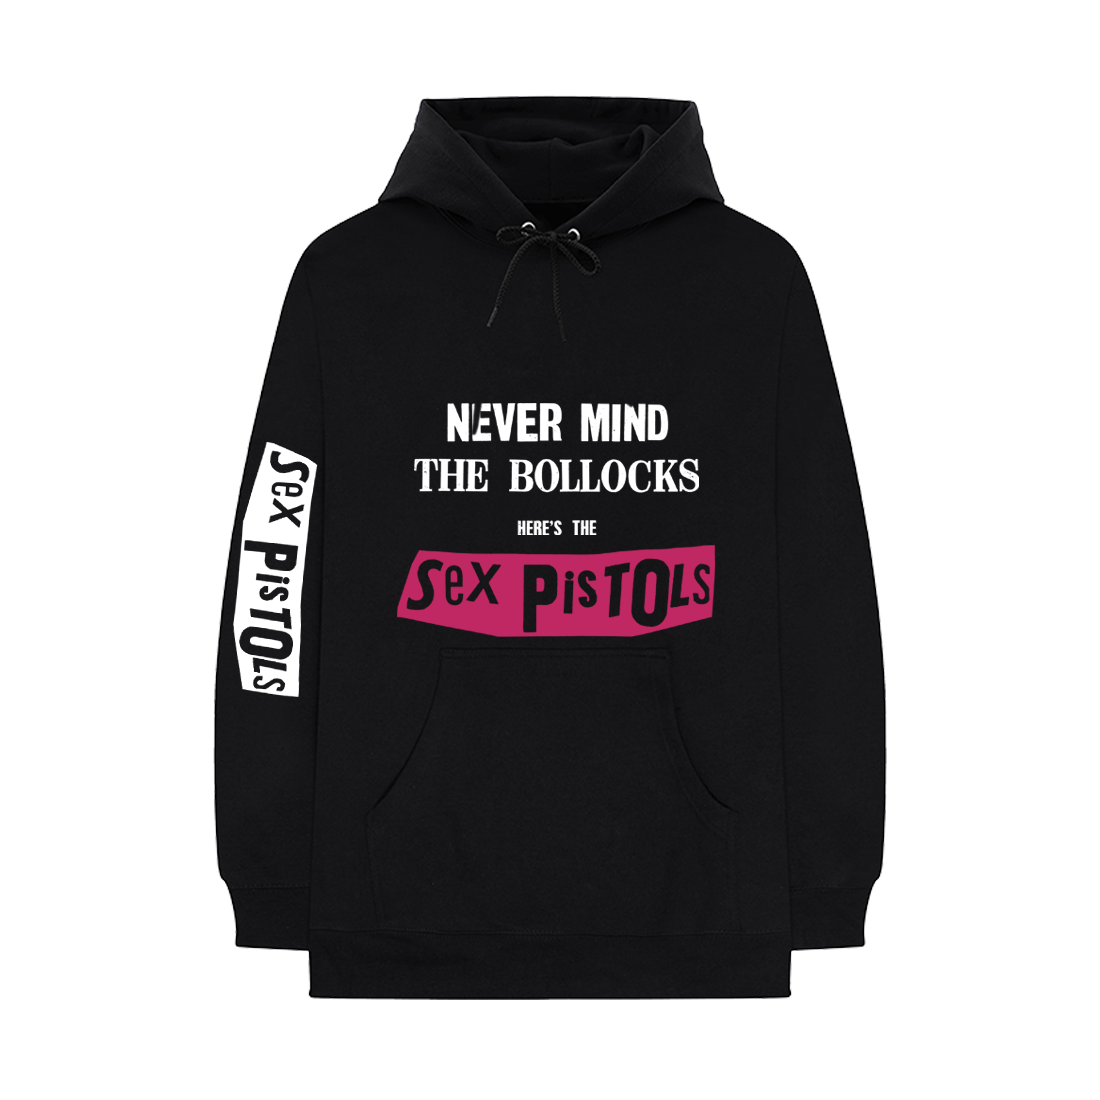 Never Mind The Bollocks - Black Hoodie (front)